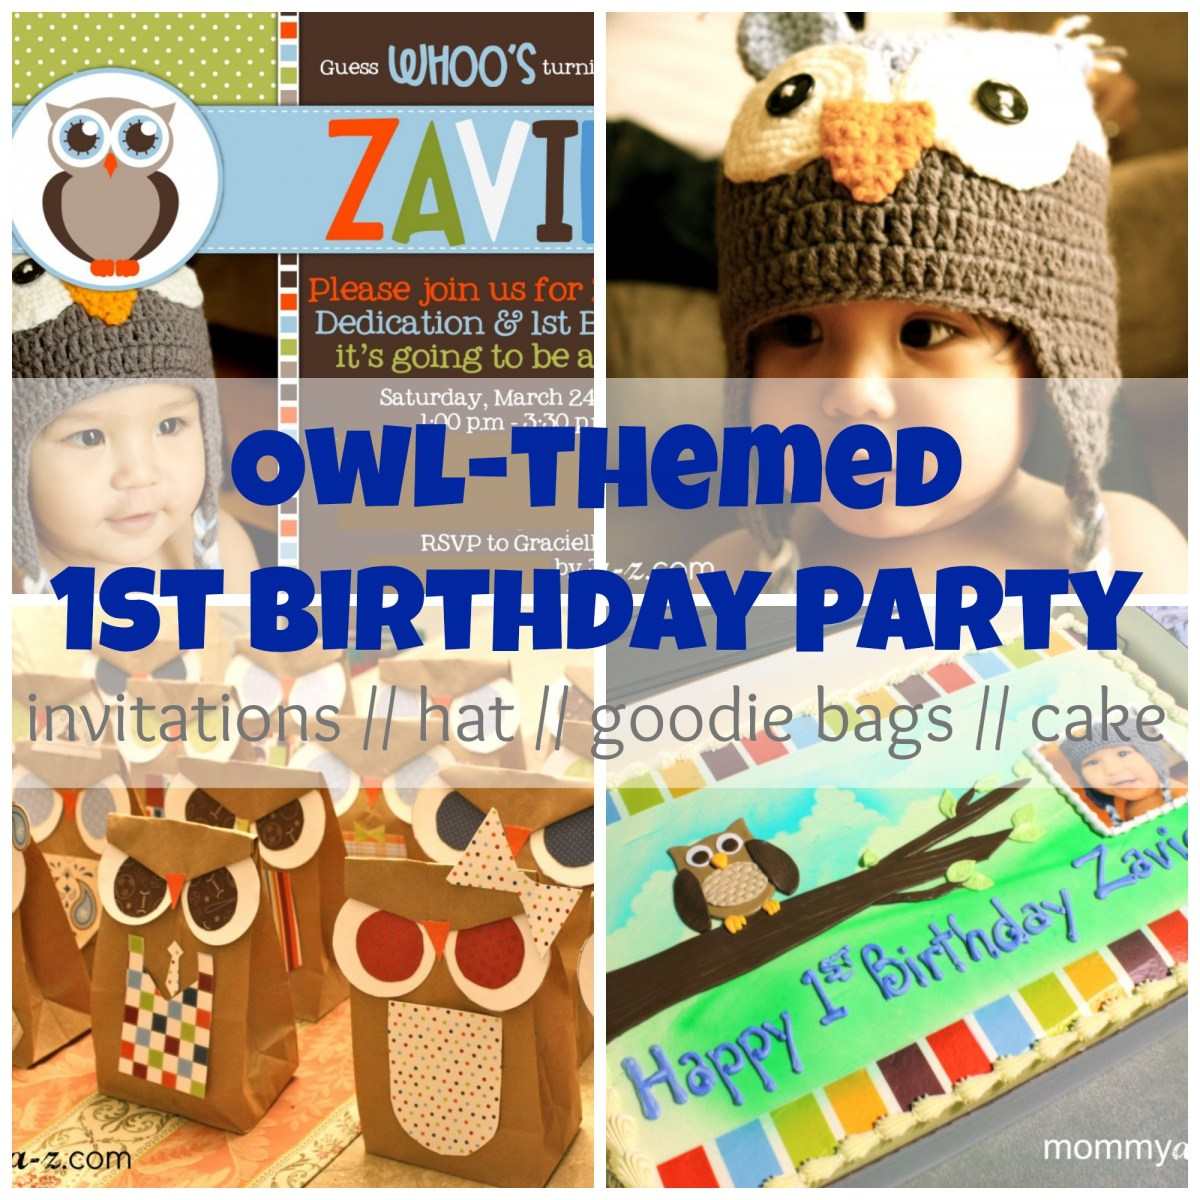 Owl-themed First Birthday Party